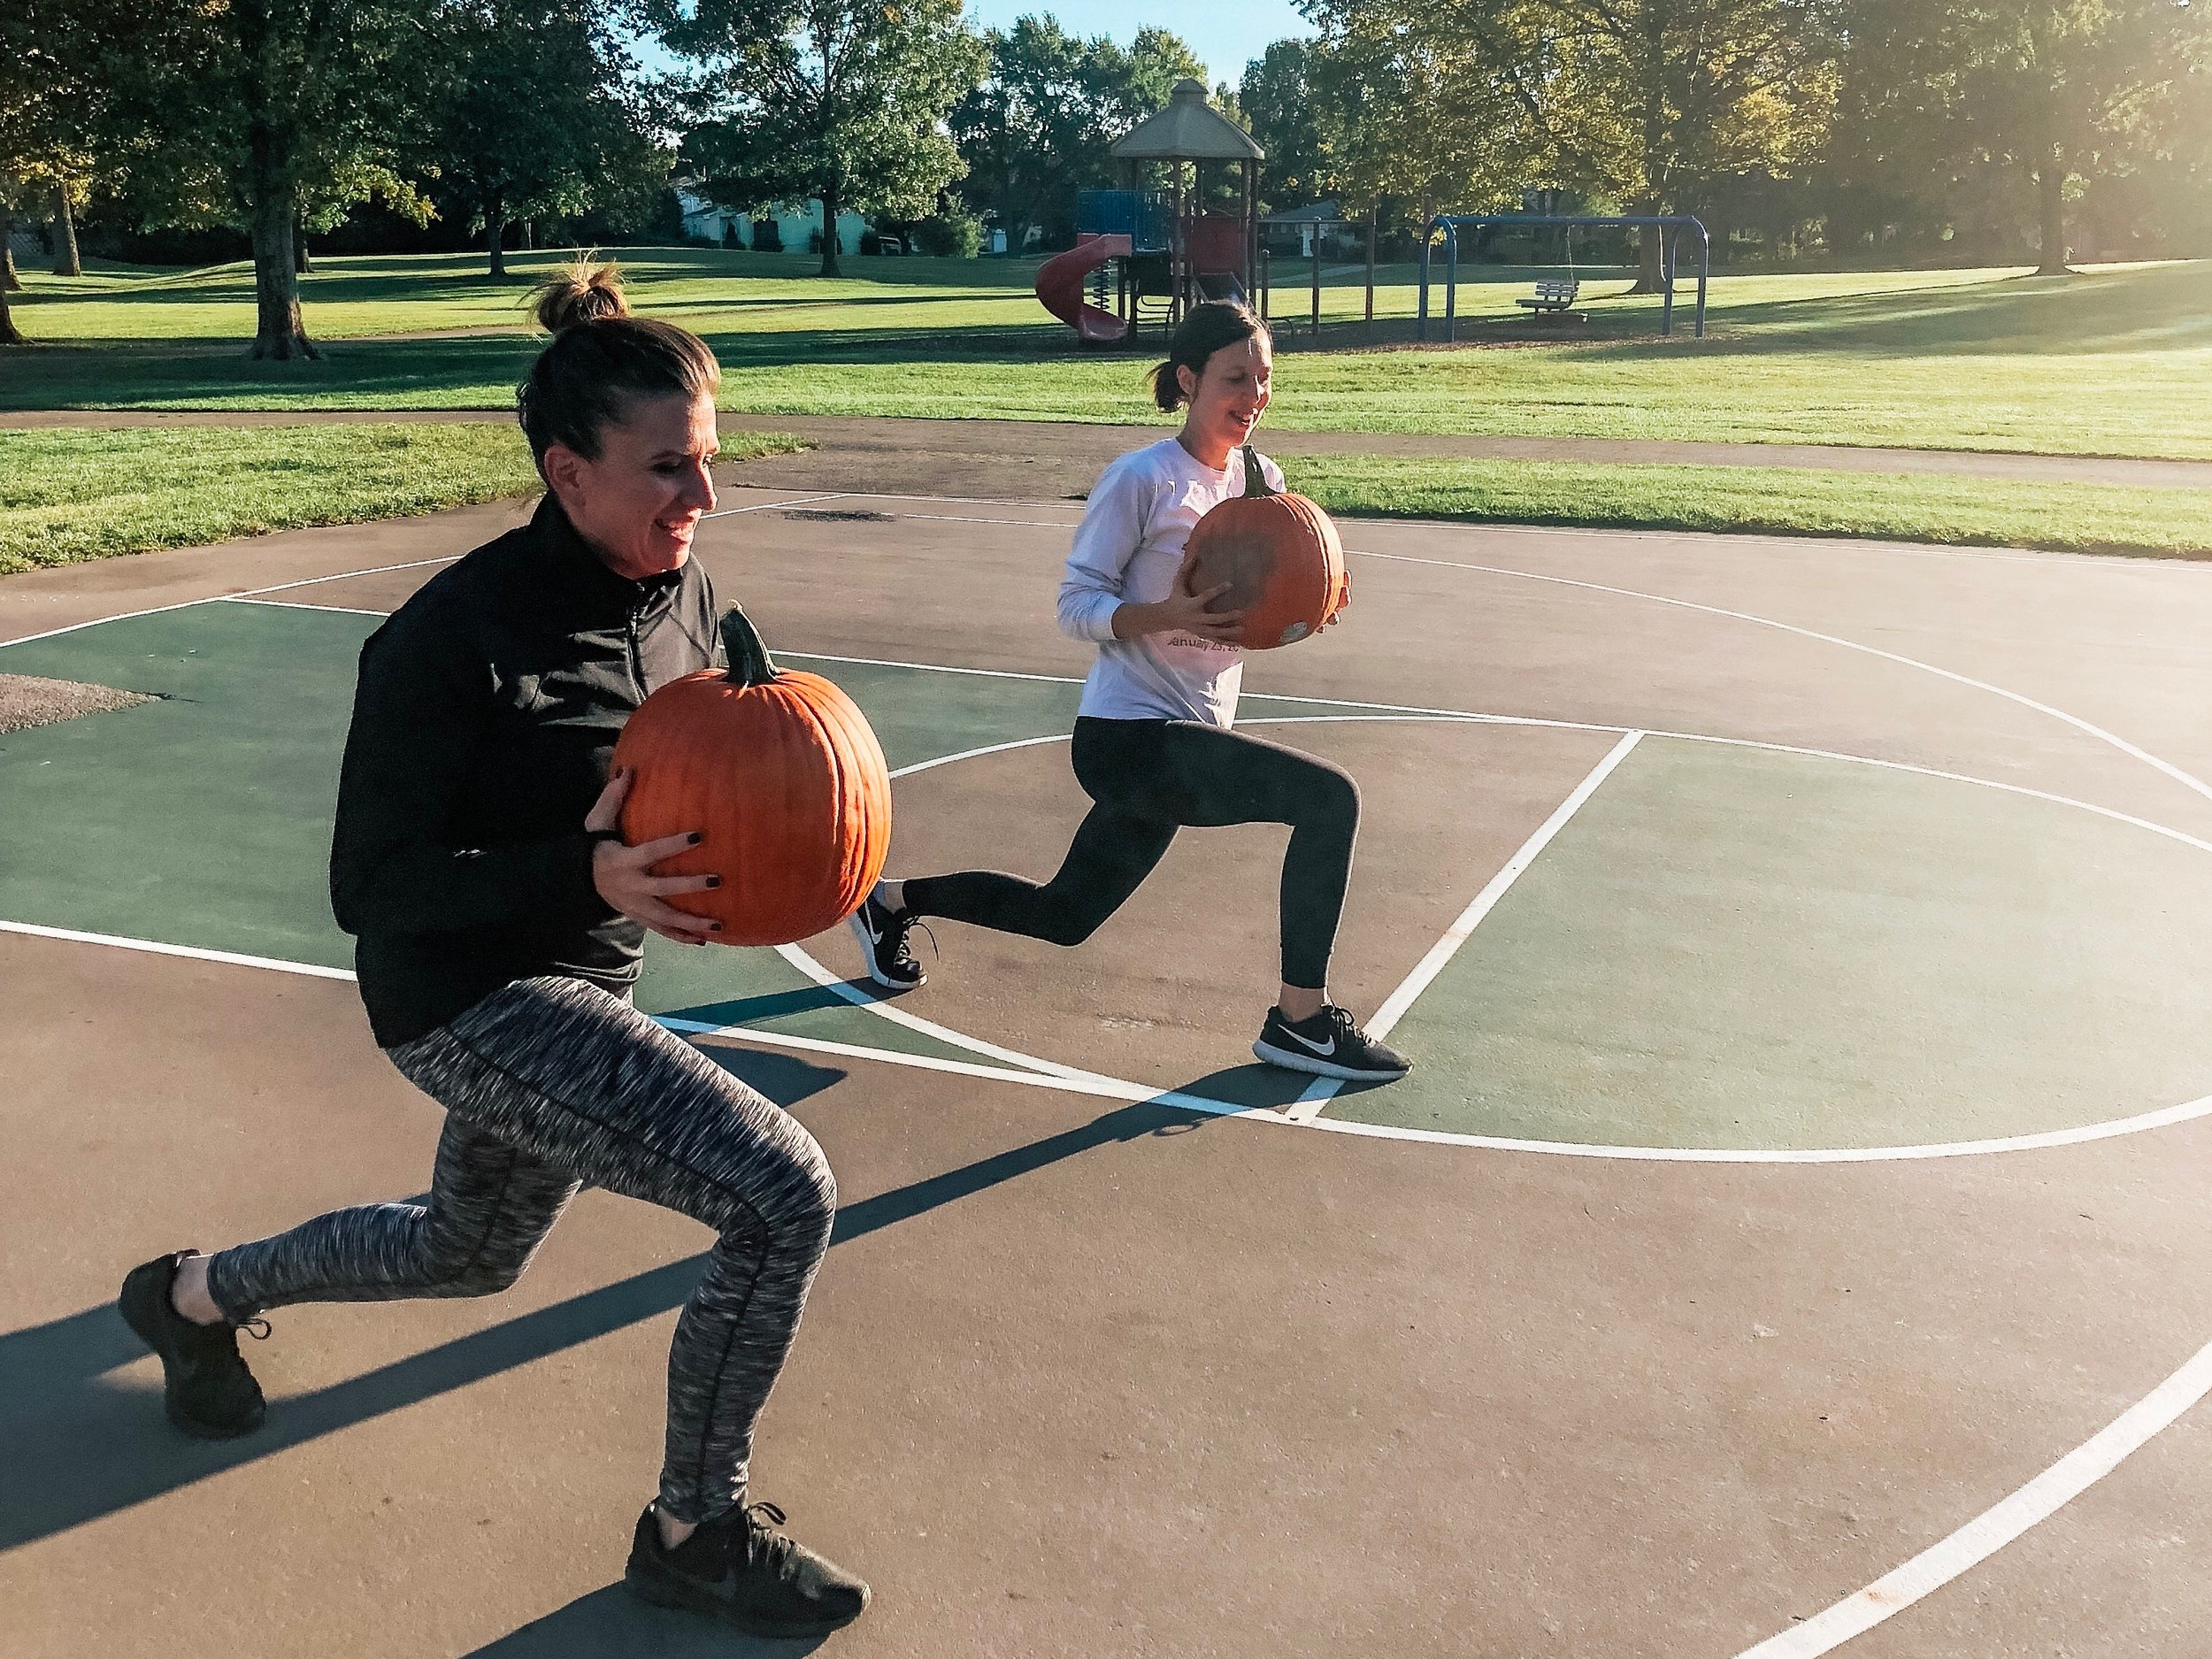 Seriously Fun - We get a serious workout in, but we don't take ourselves too seriously. We are moms, dads and teachers who want to show our kids the importance of health and fitness by our own example.